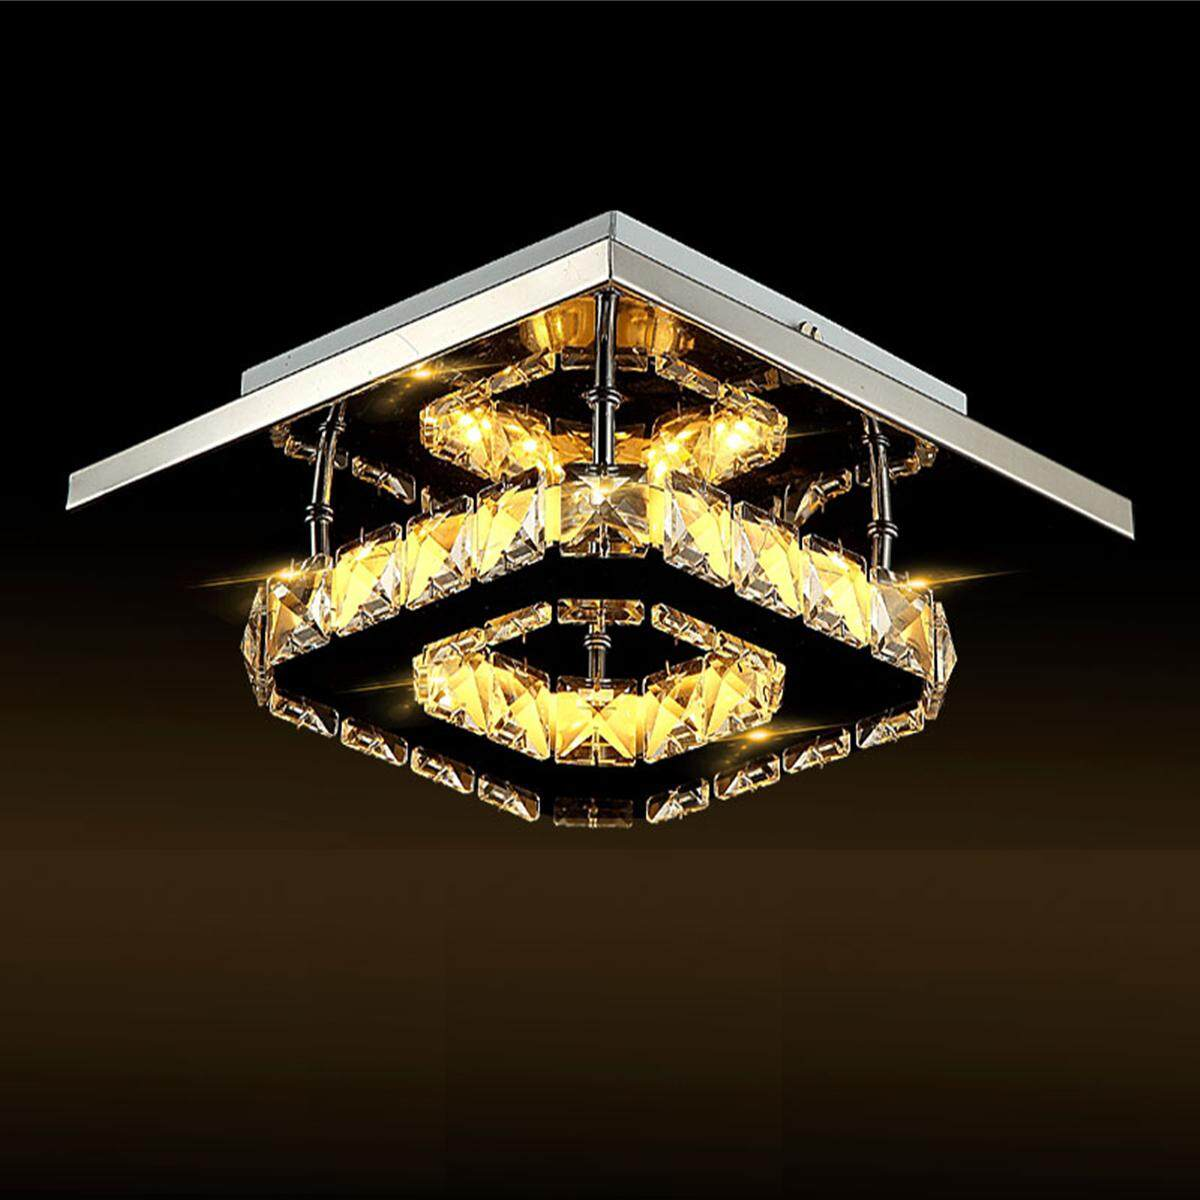 Modern Crystal Ceiling Light Pendant Lamp Fixture Chandelier Living Room Decor#Warm Light